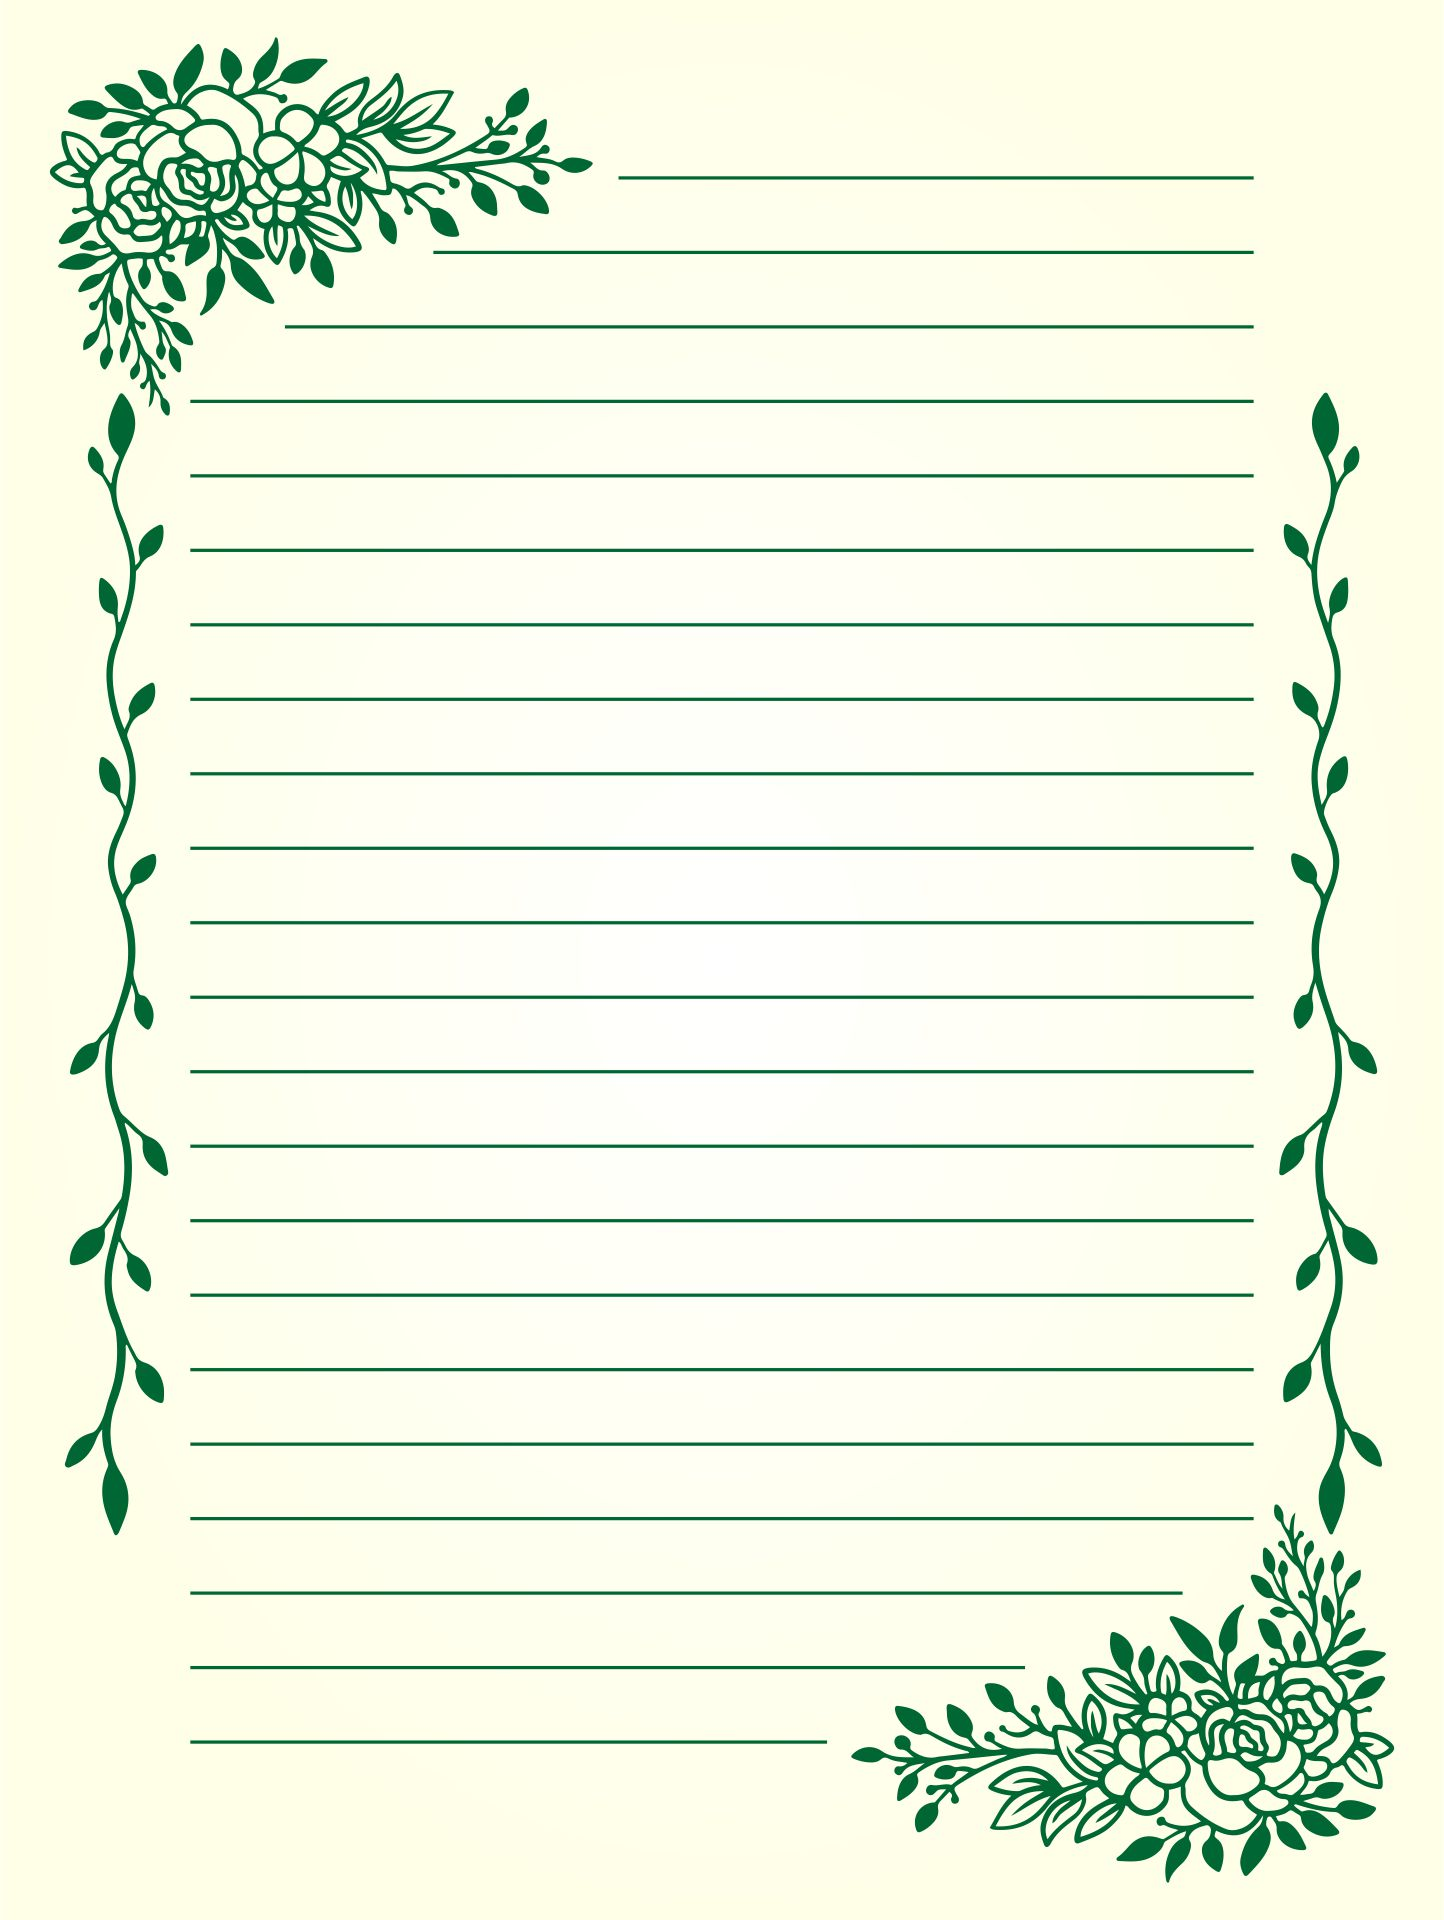 Printable Lined Stationery Paper